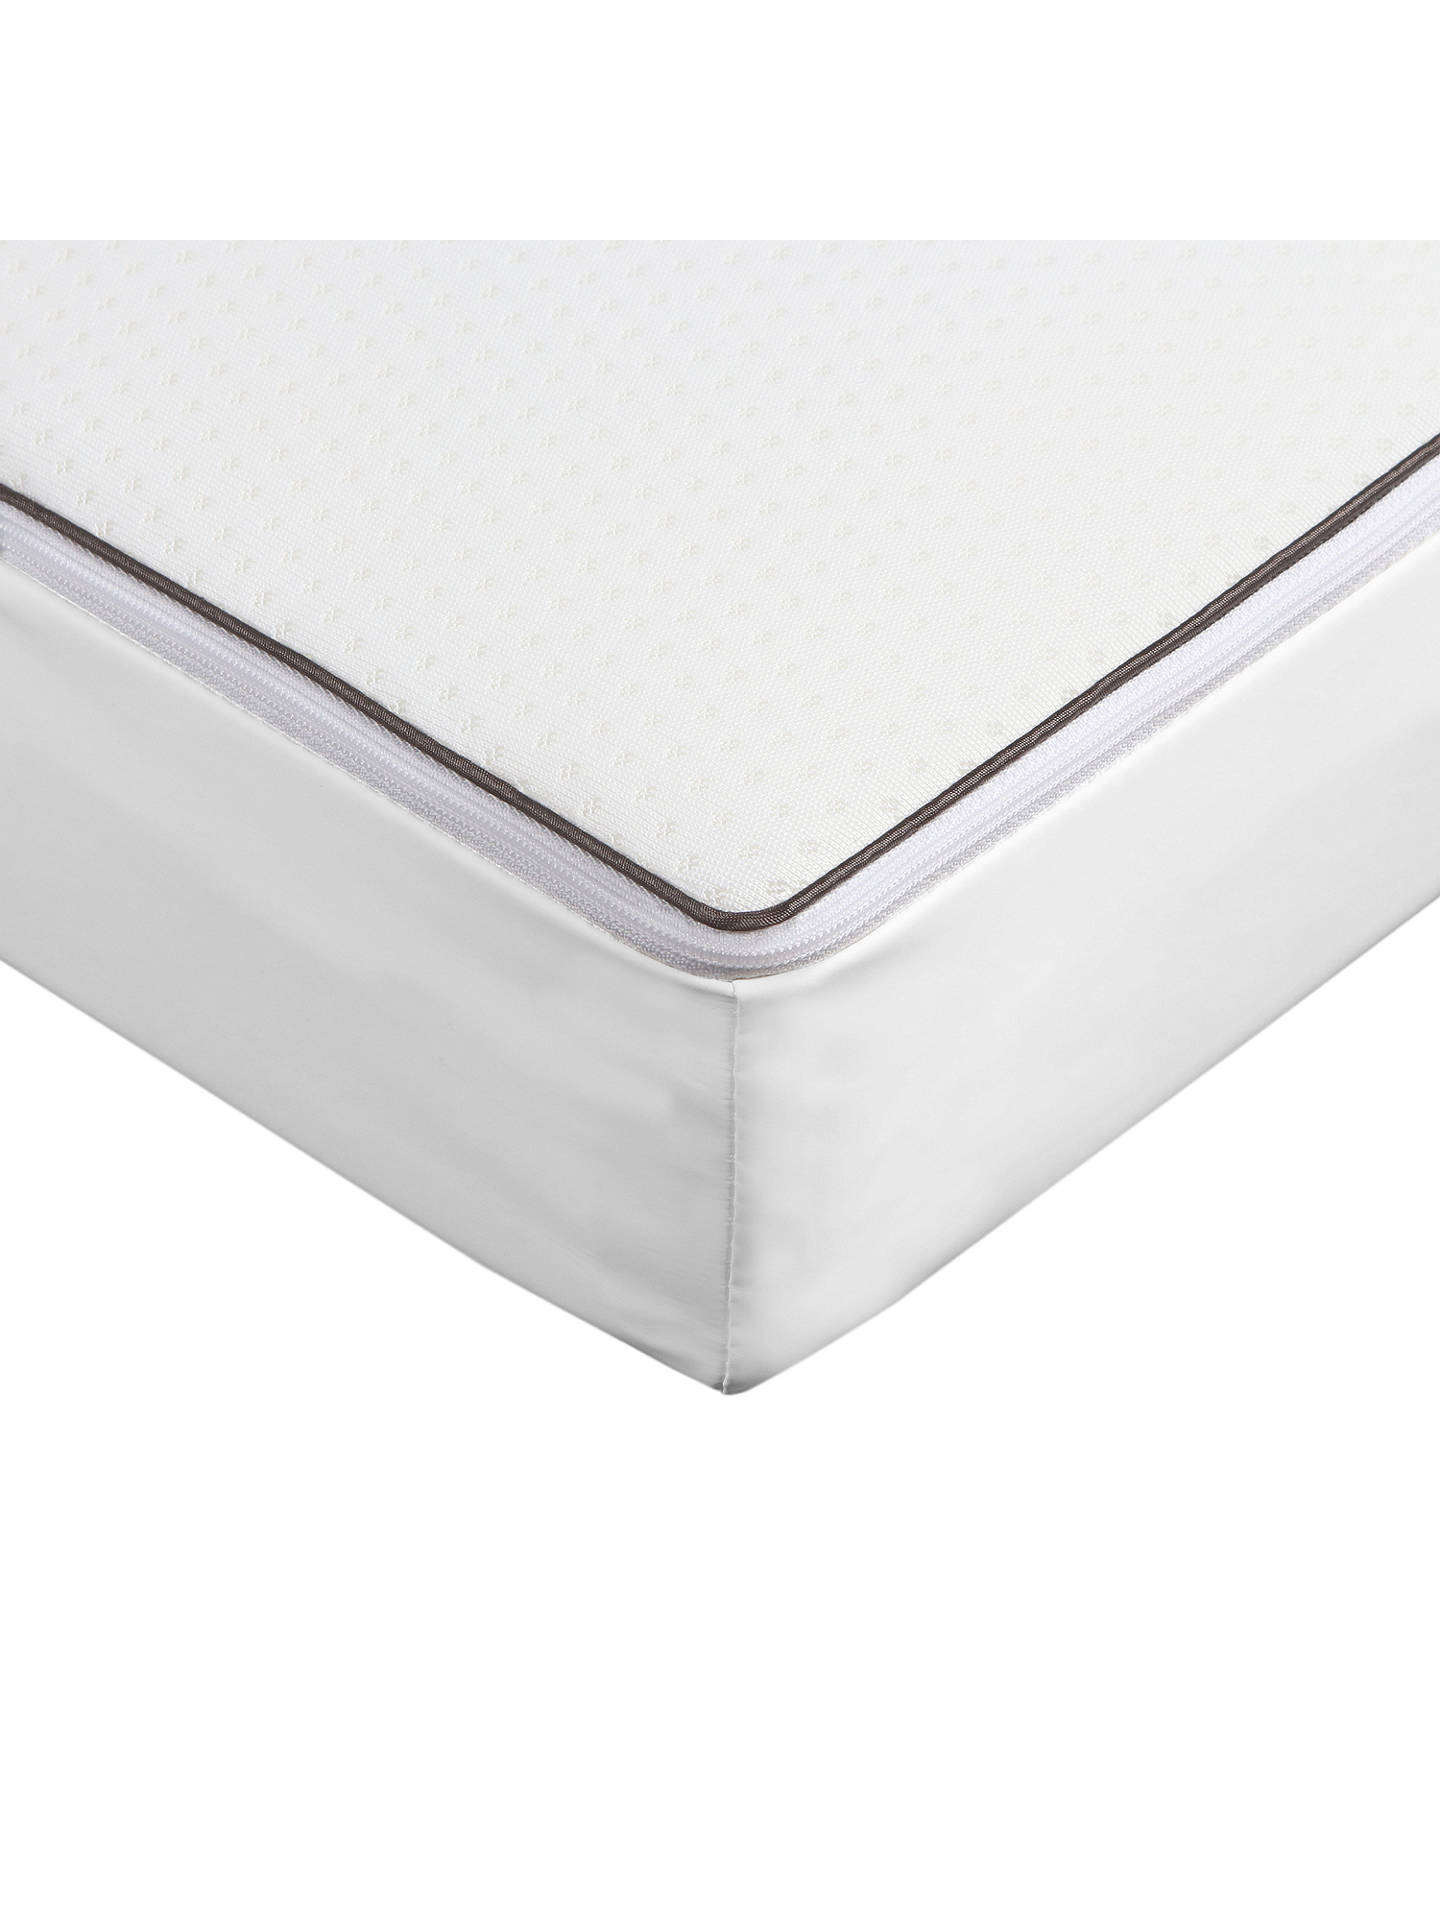 Buy John Lewis & Partners Pocket Spring Cotbed Mattress, 140 x 70cm Online at johnlewis.com